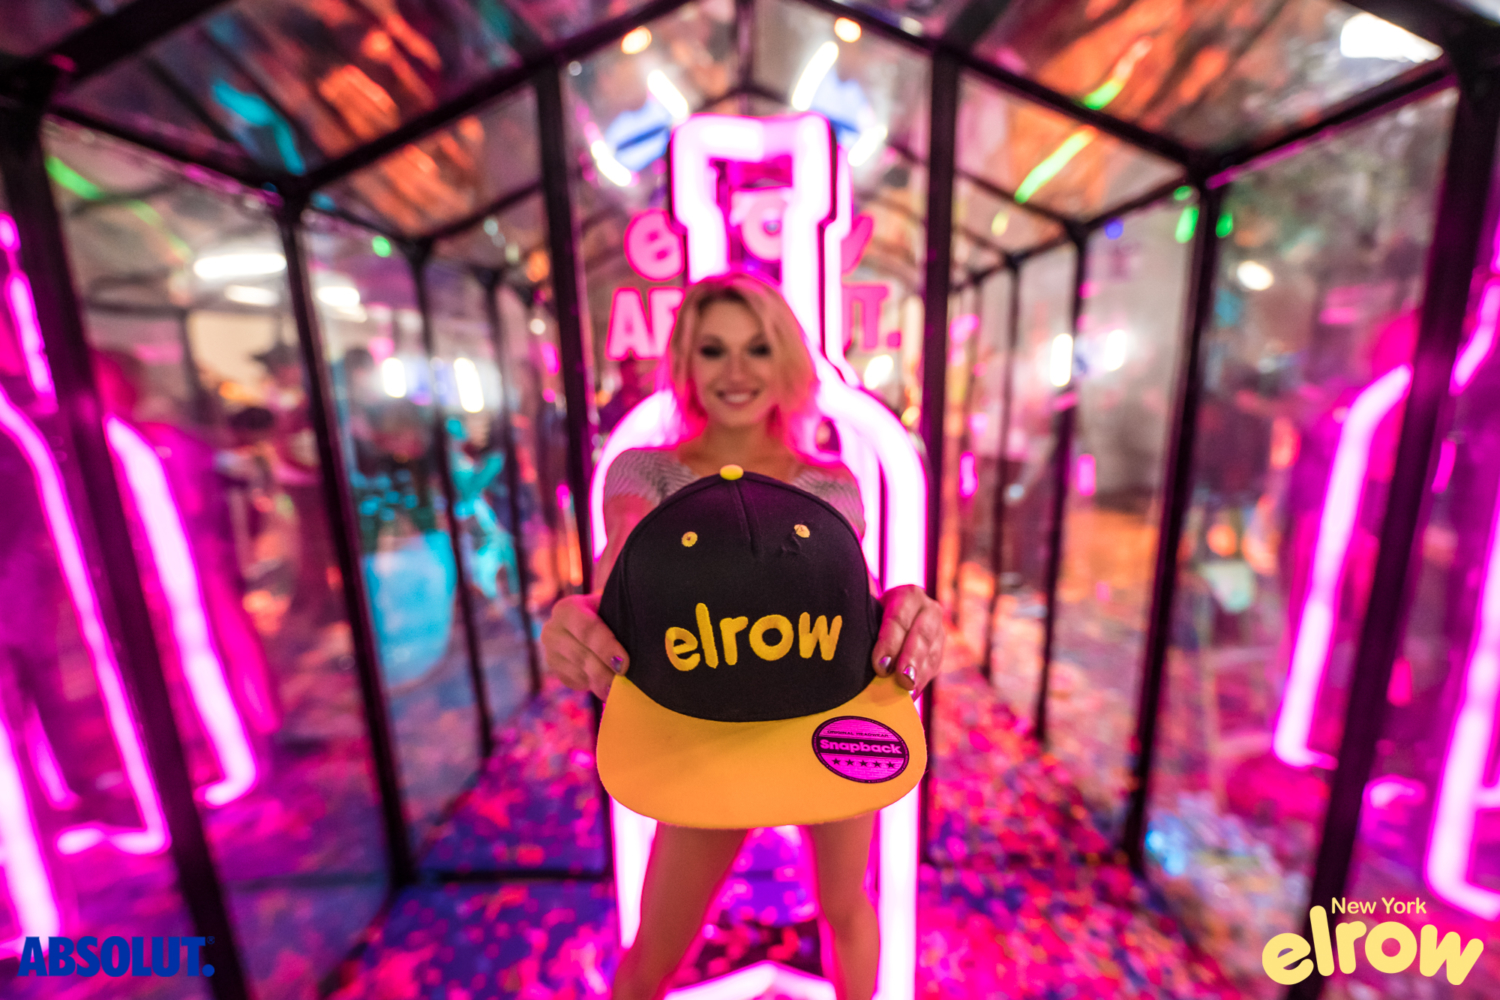 Making magic happen at Elrow Open Air – photos by aLIVE coverageELROW2018 0728 220741 9523 ALIVECOVERAGE